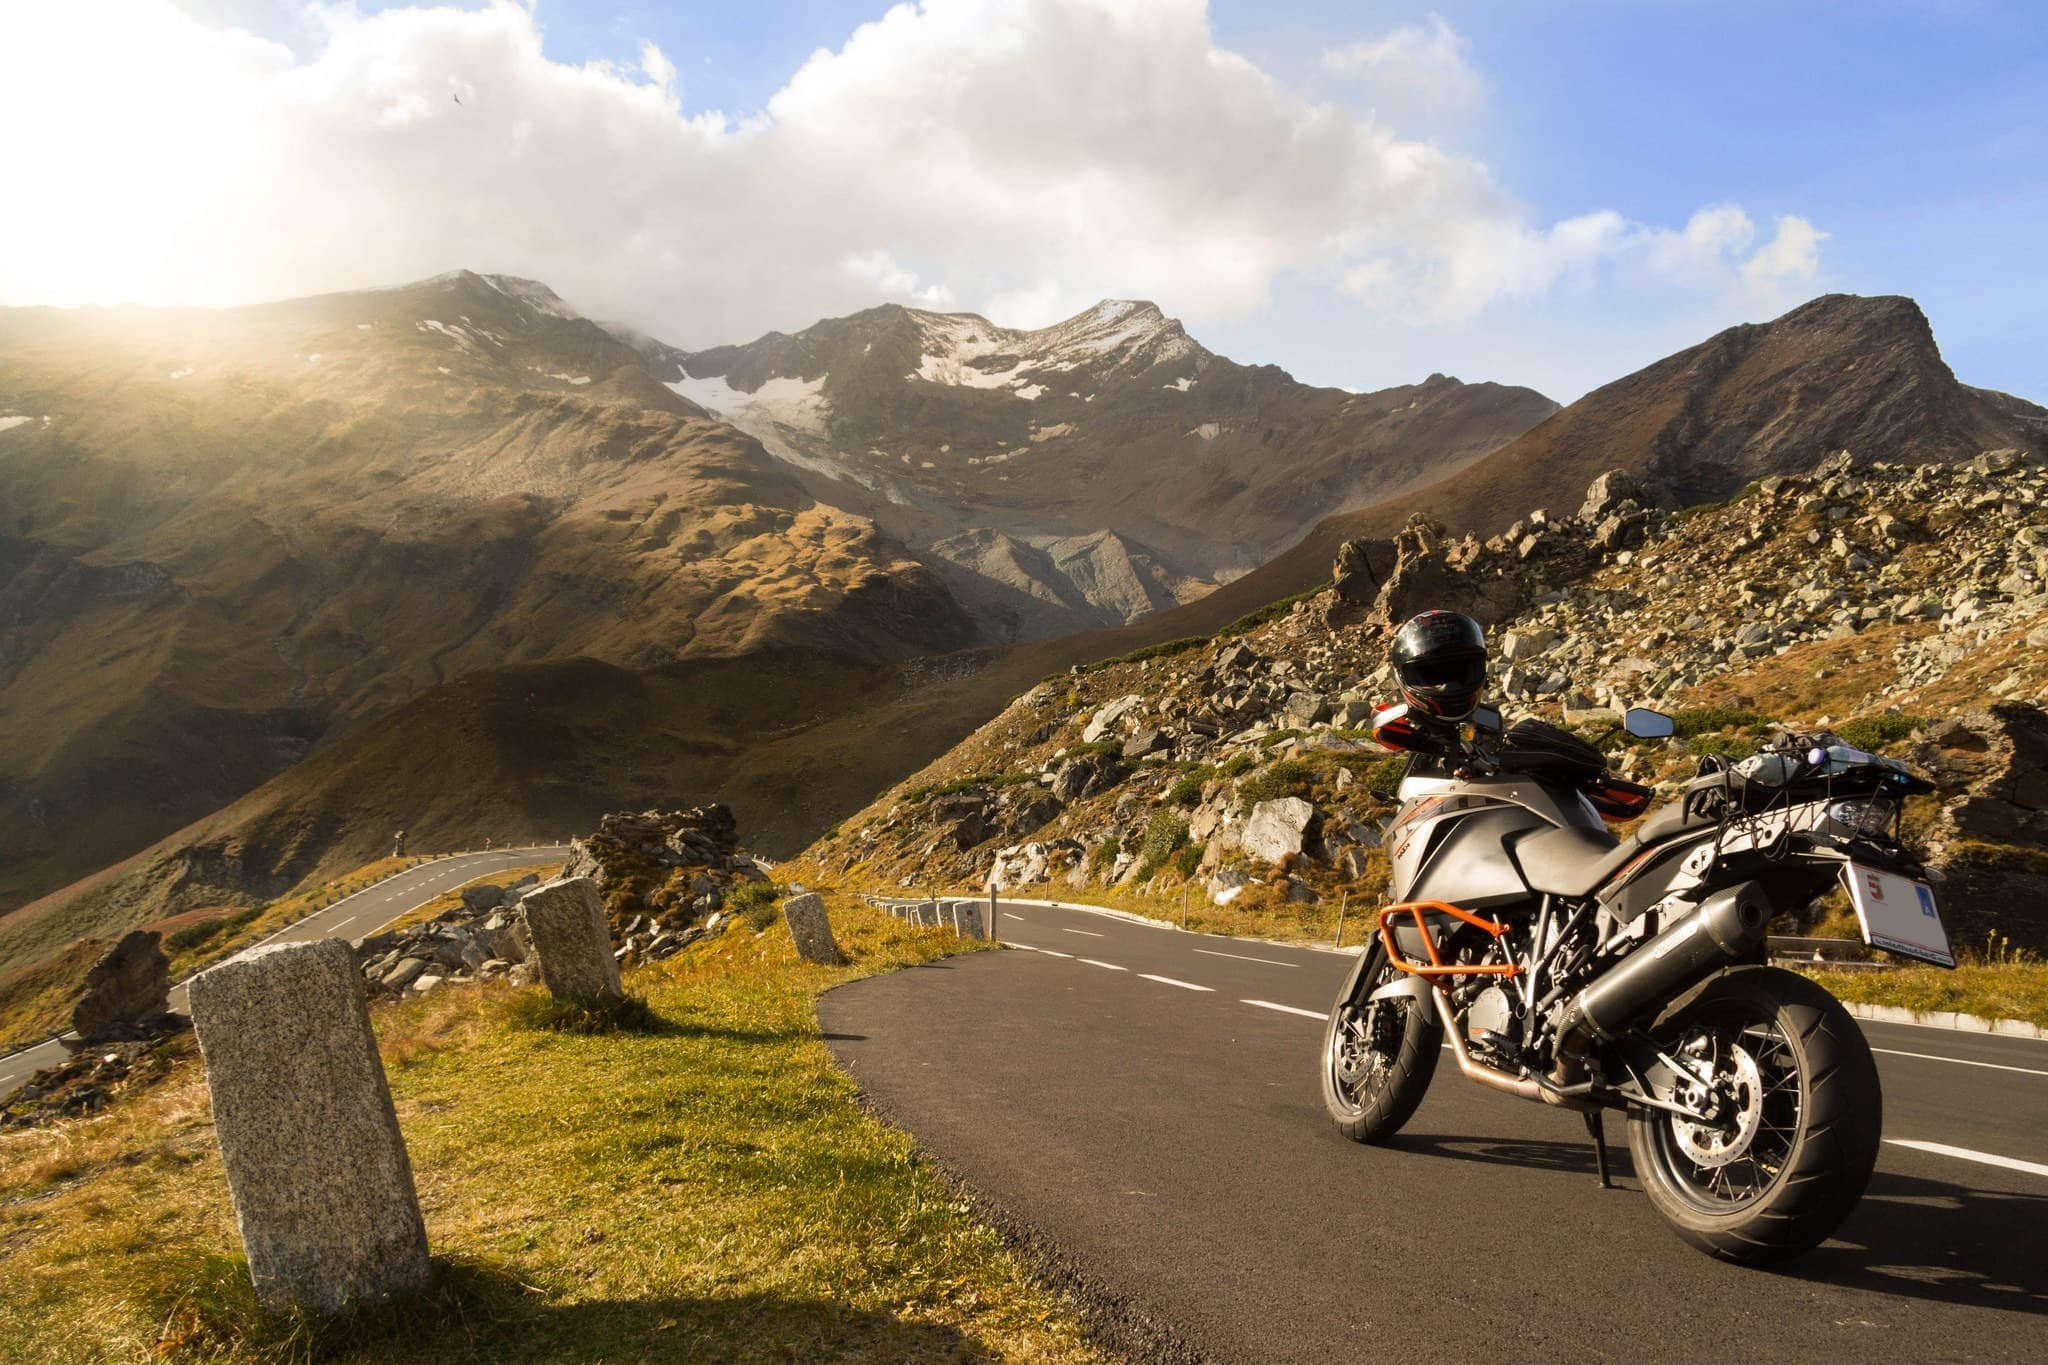 mountain, - Grossglockner, motorcycle